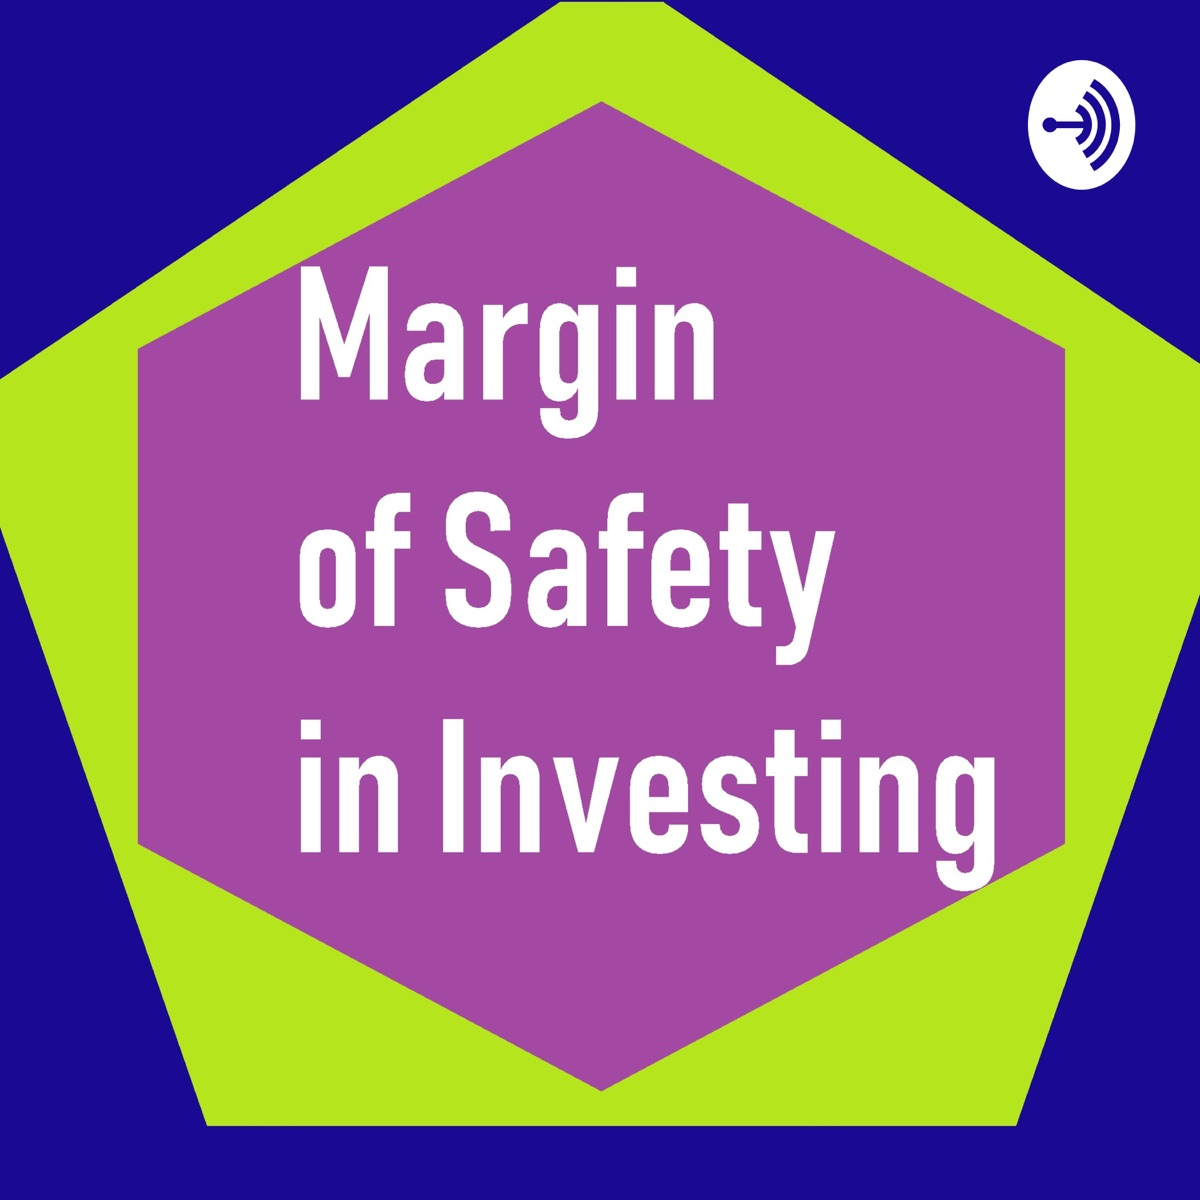 Margin of safety in investing